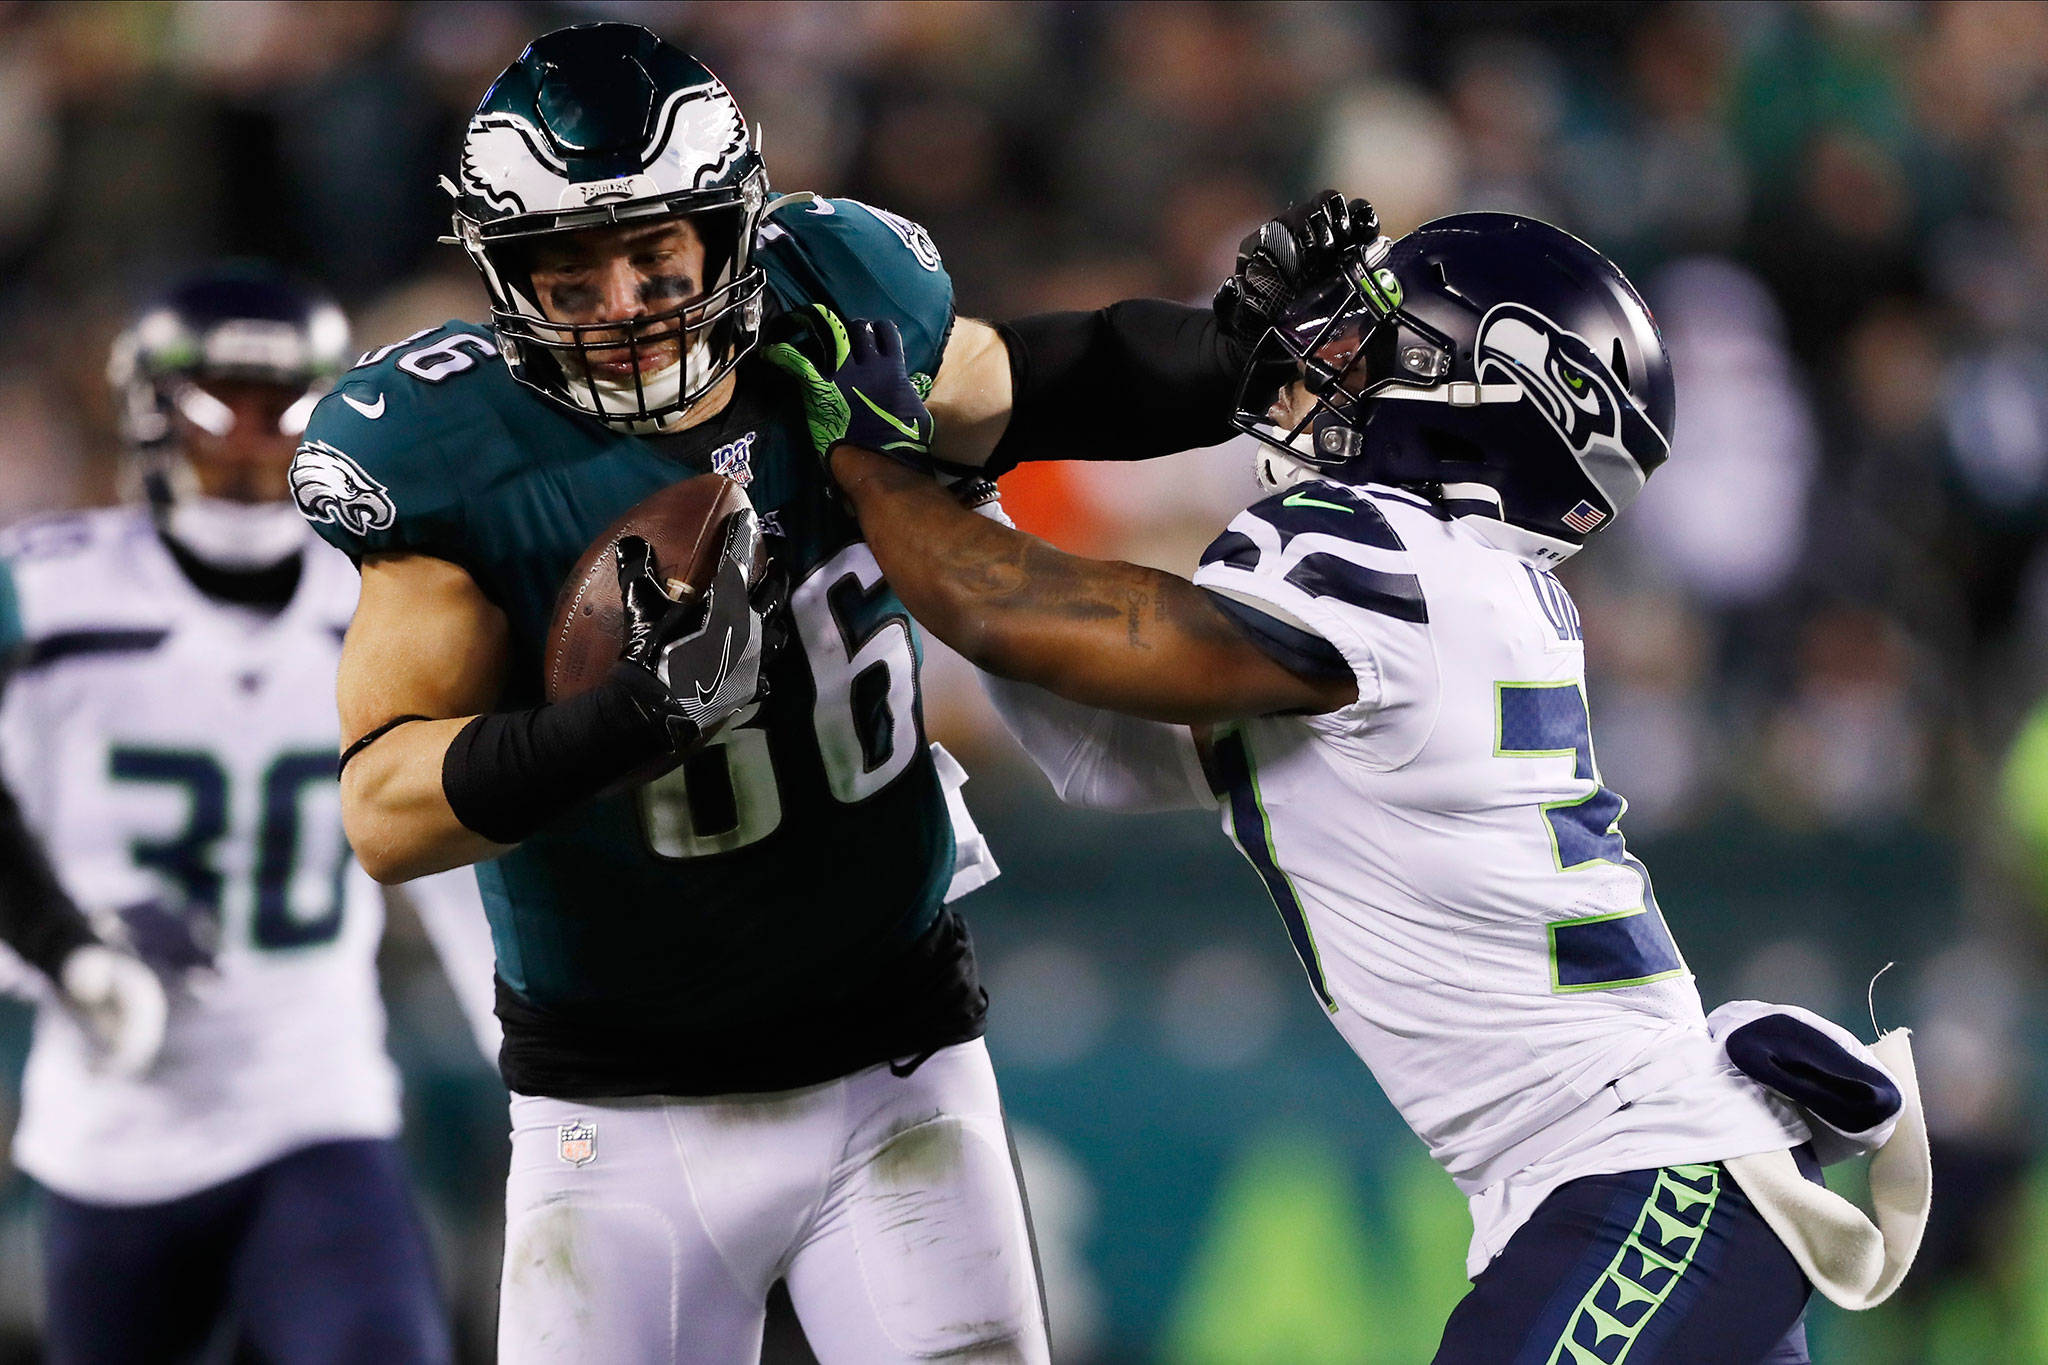 The Eagles' Zach Ertz (left) tries to hold off the Seahawks' Quandre Diggs during the second half of a wild-card playoff game this past Sunday in Philadelphia. (AP Photo/Julio Cortez)